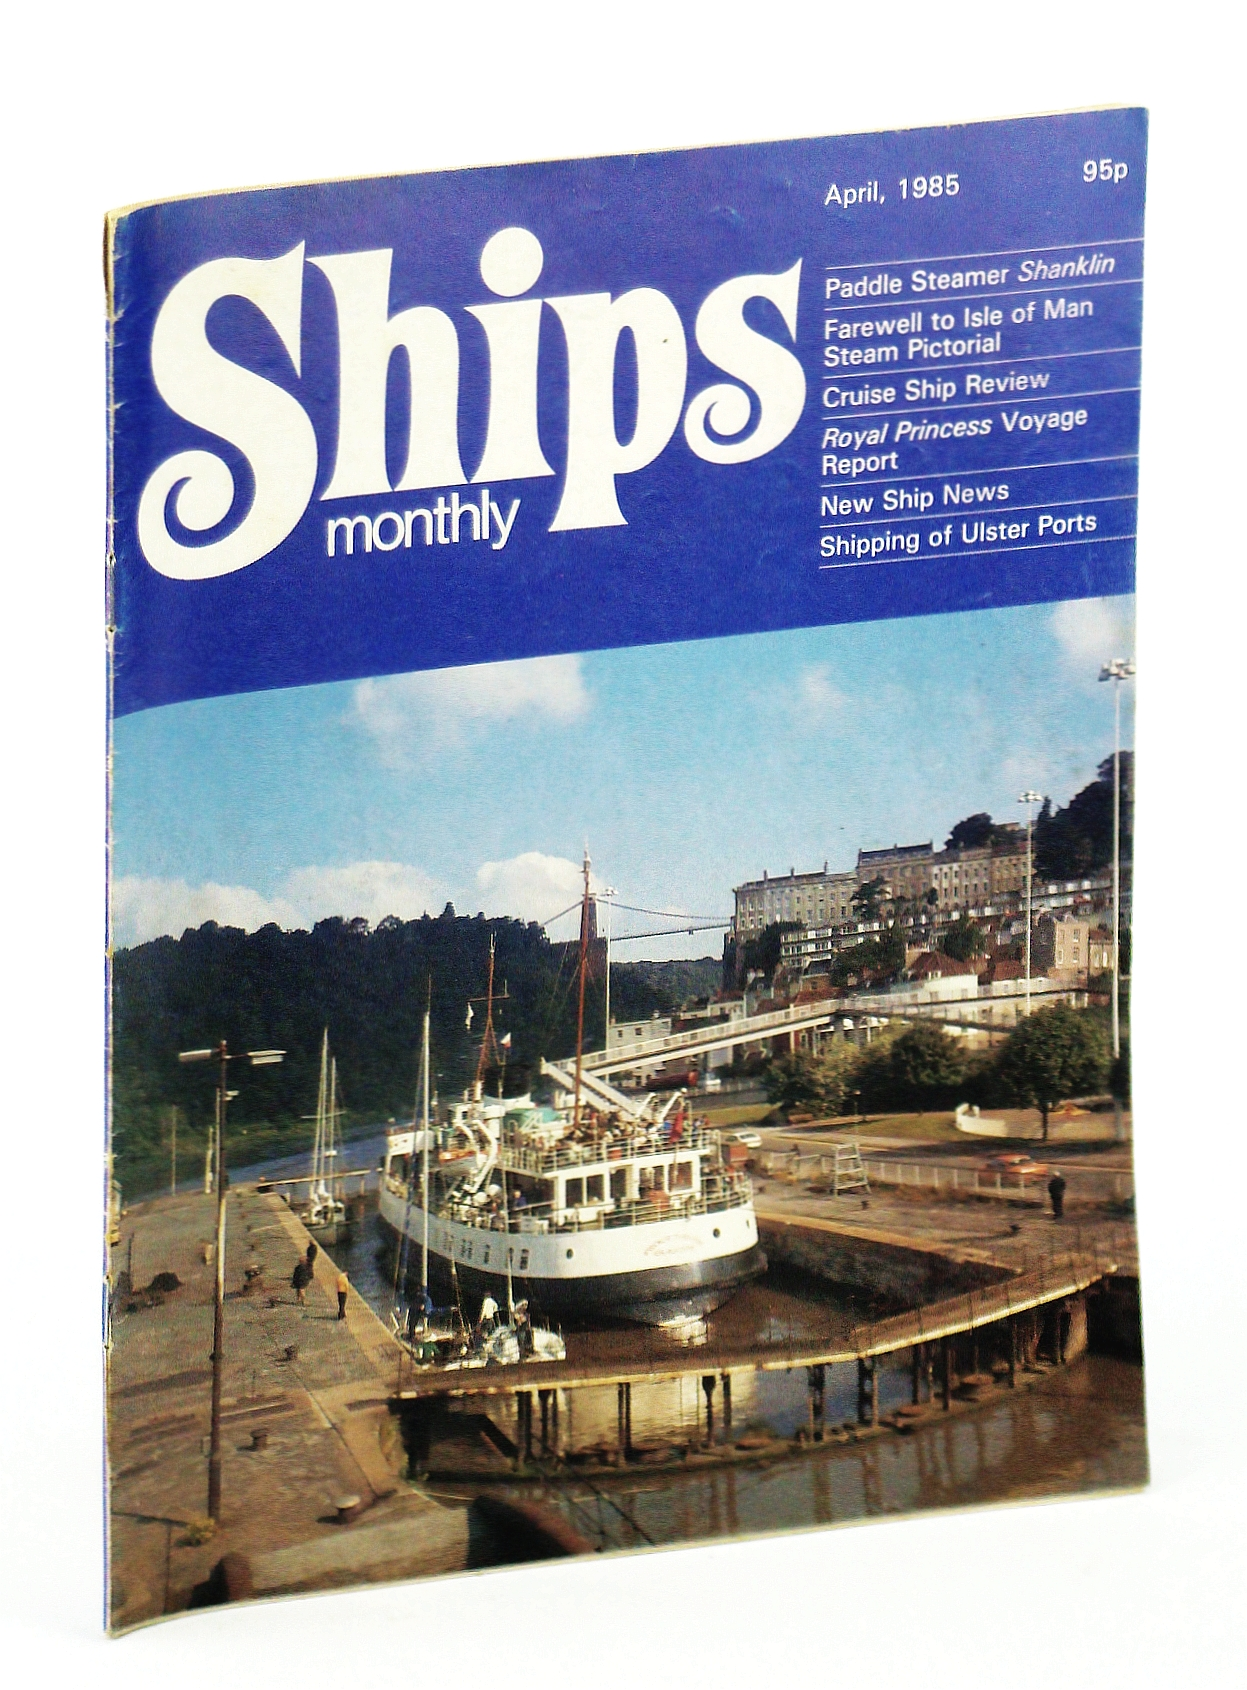 Image for Ships Monthly - The Magazine for Shiplovers Ashore and Afloat, April 1985 - Shipping of the Ulster Ports